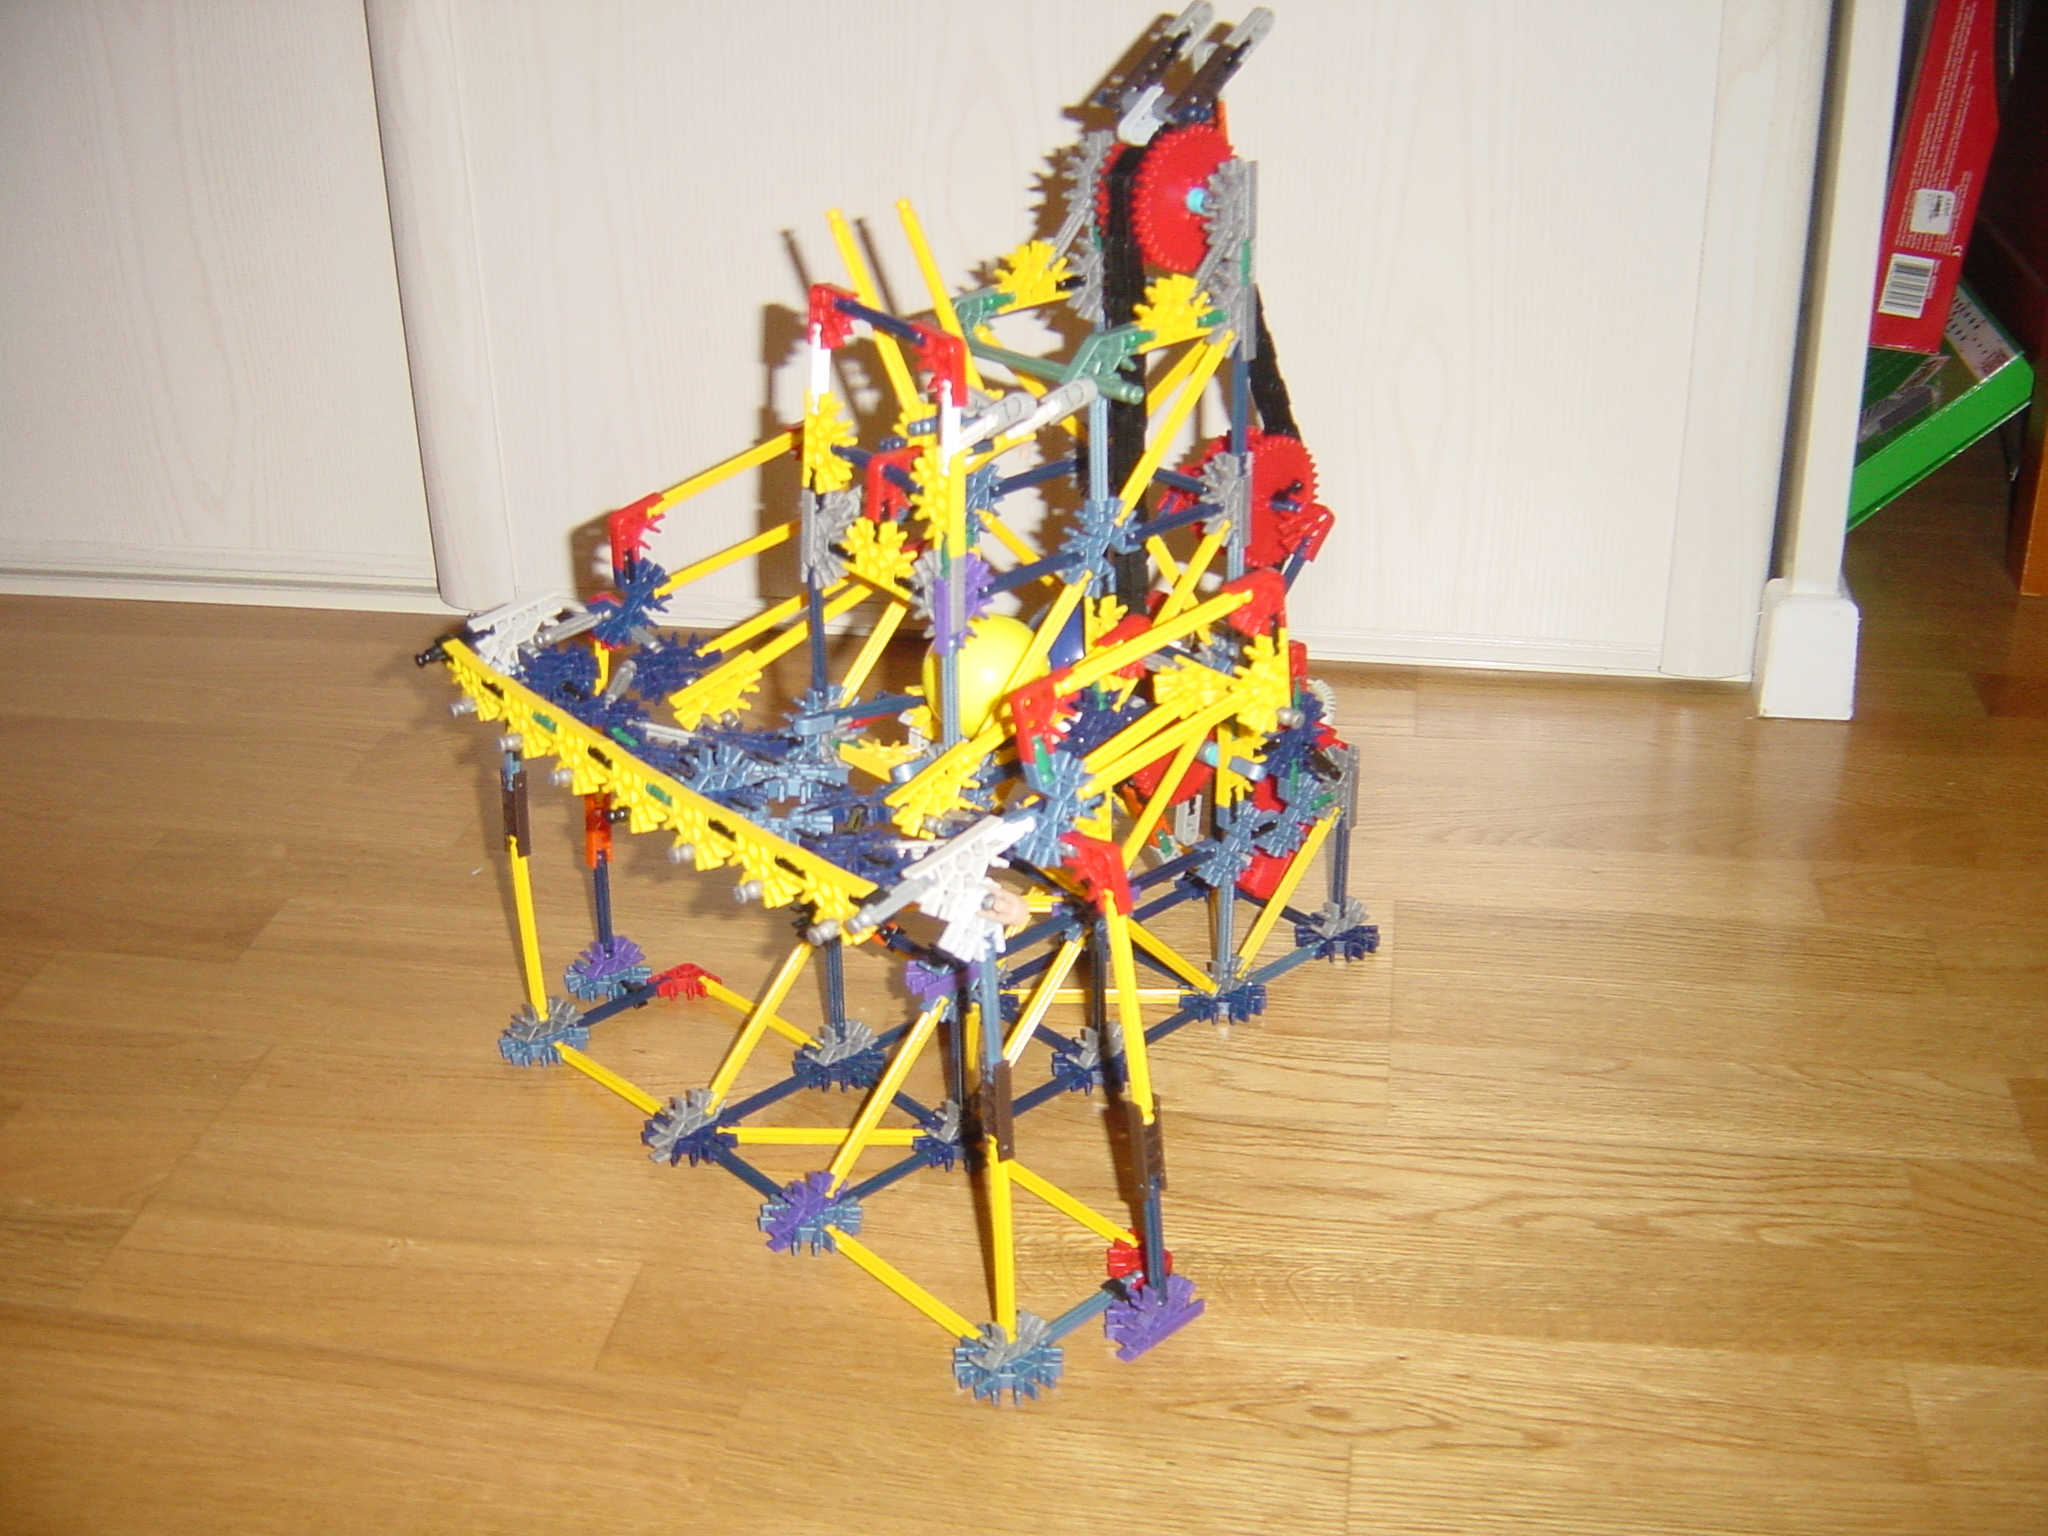 Project S (Knex Ball Machine)